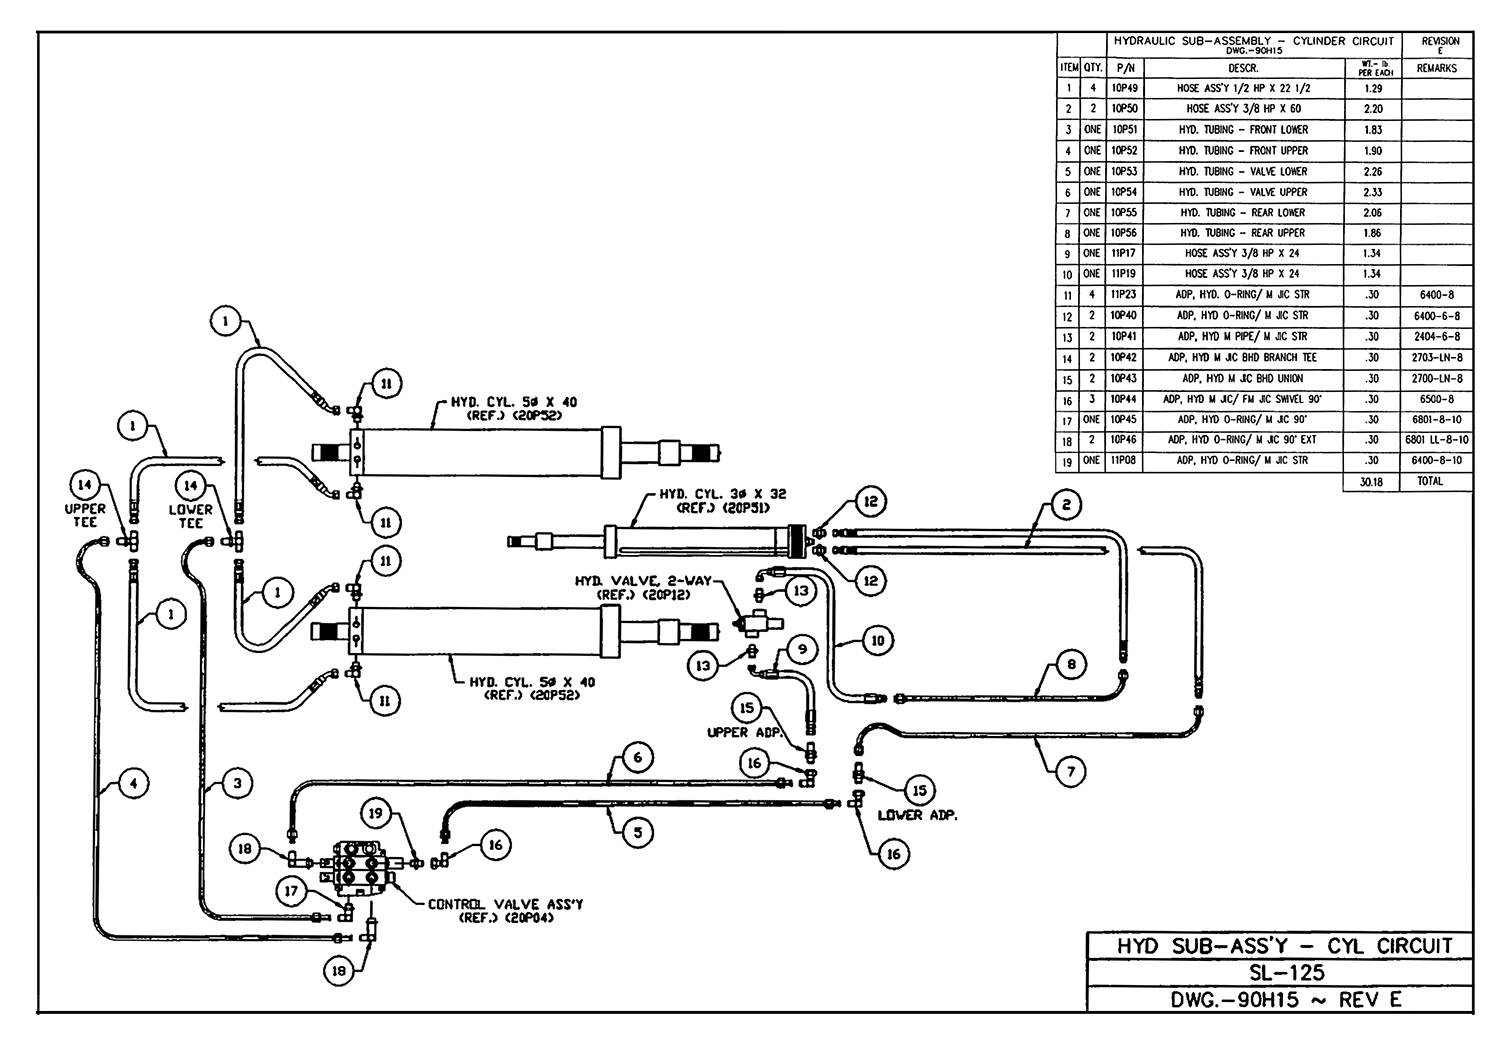 SL-125 Hydraulic Sub-Assembly (Cylinder Circuit) Diagram